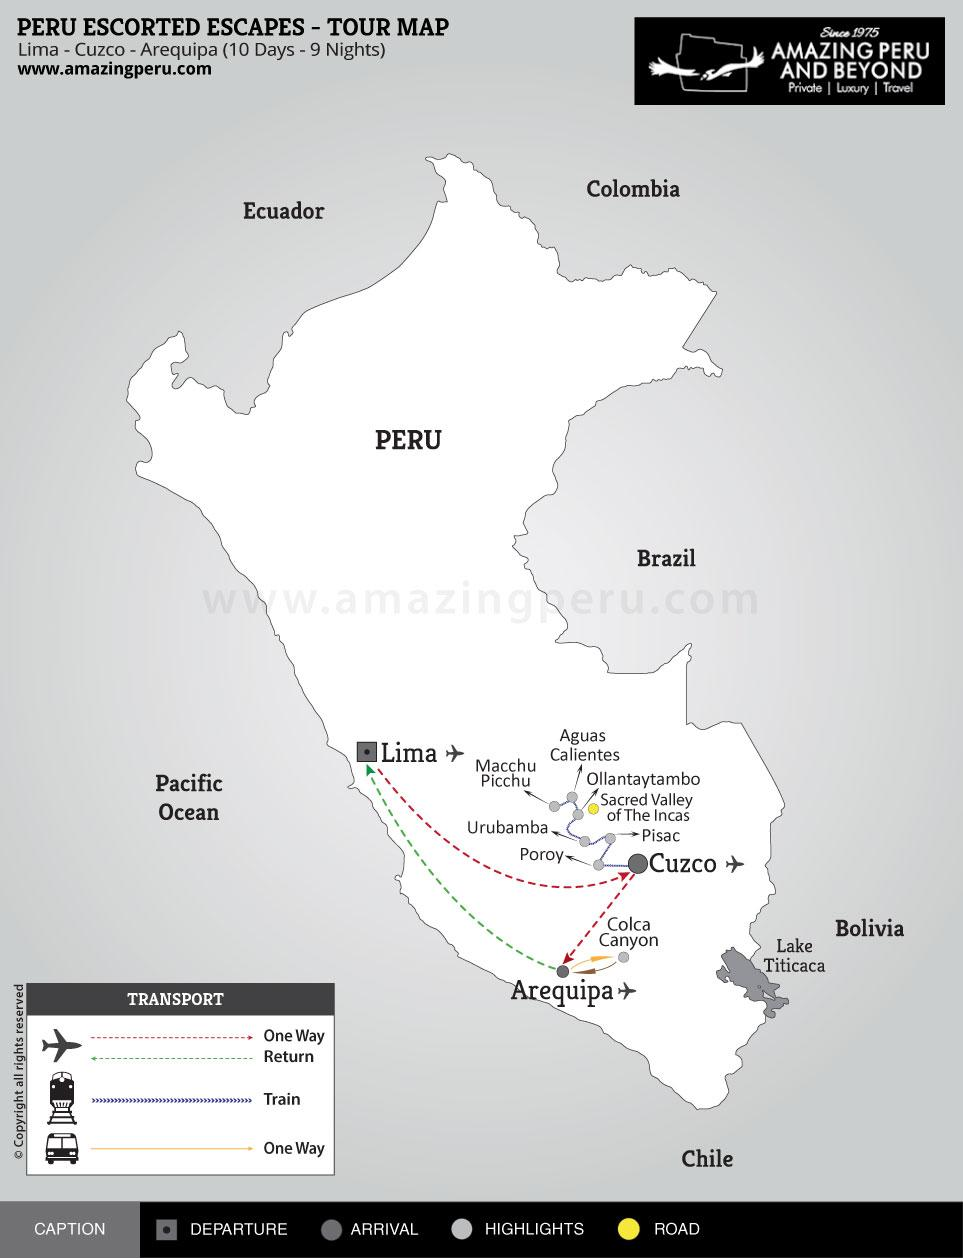 Peru Escorted Escapes Tour 2 - 10 days / 9 nights.